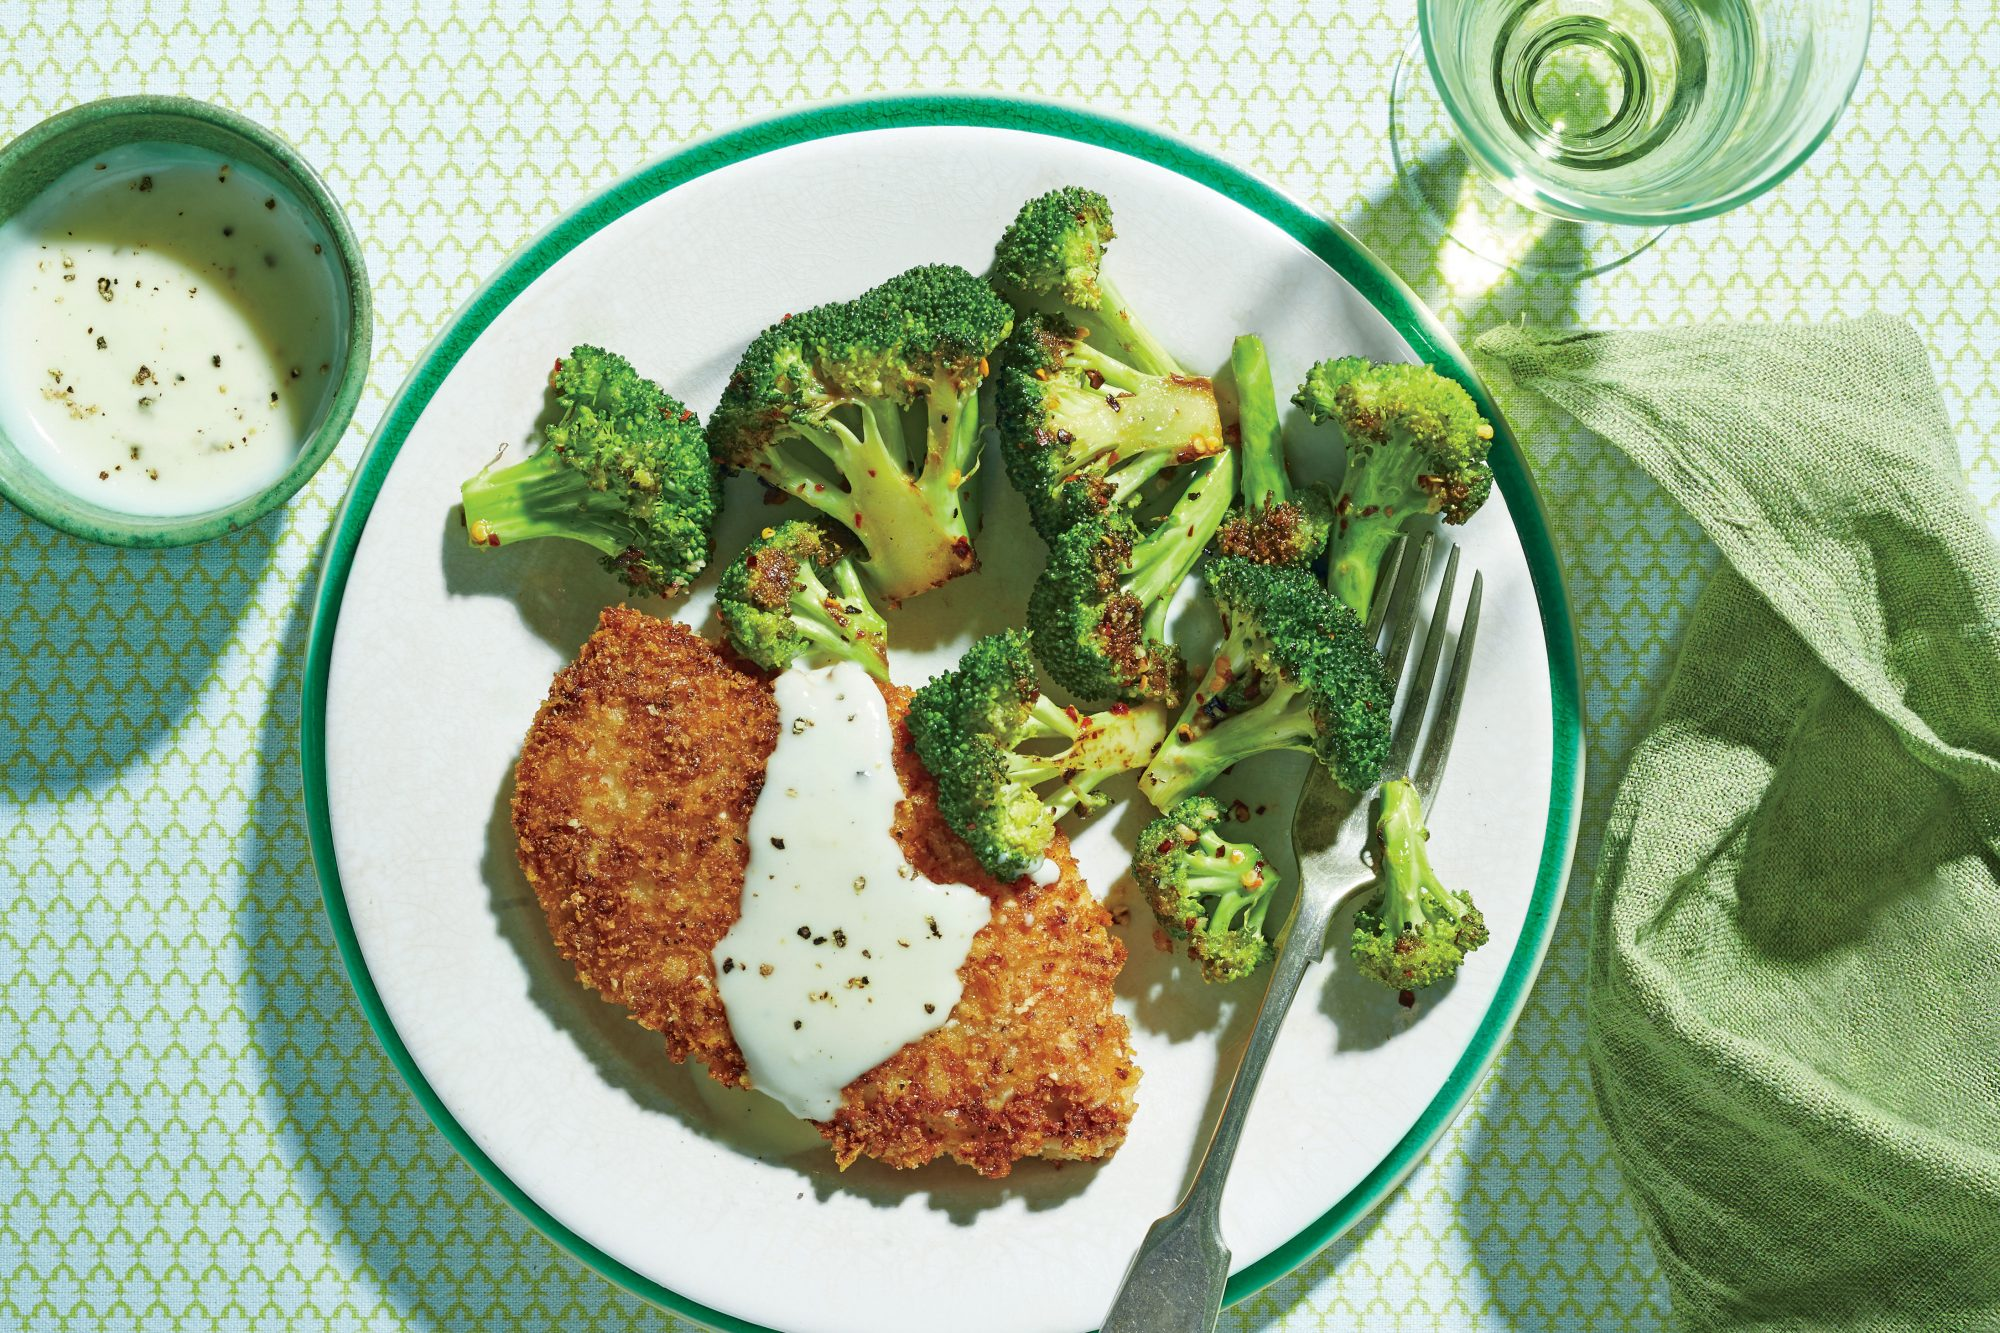 Crispy Oven-Fried Chicken Cutlets with Roasted Broccoli and Parmesan Cream Sauce